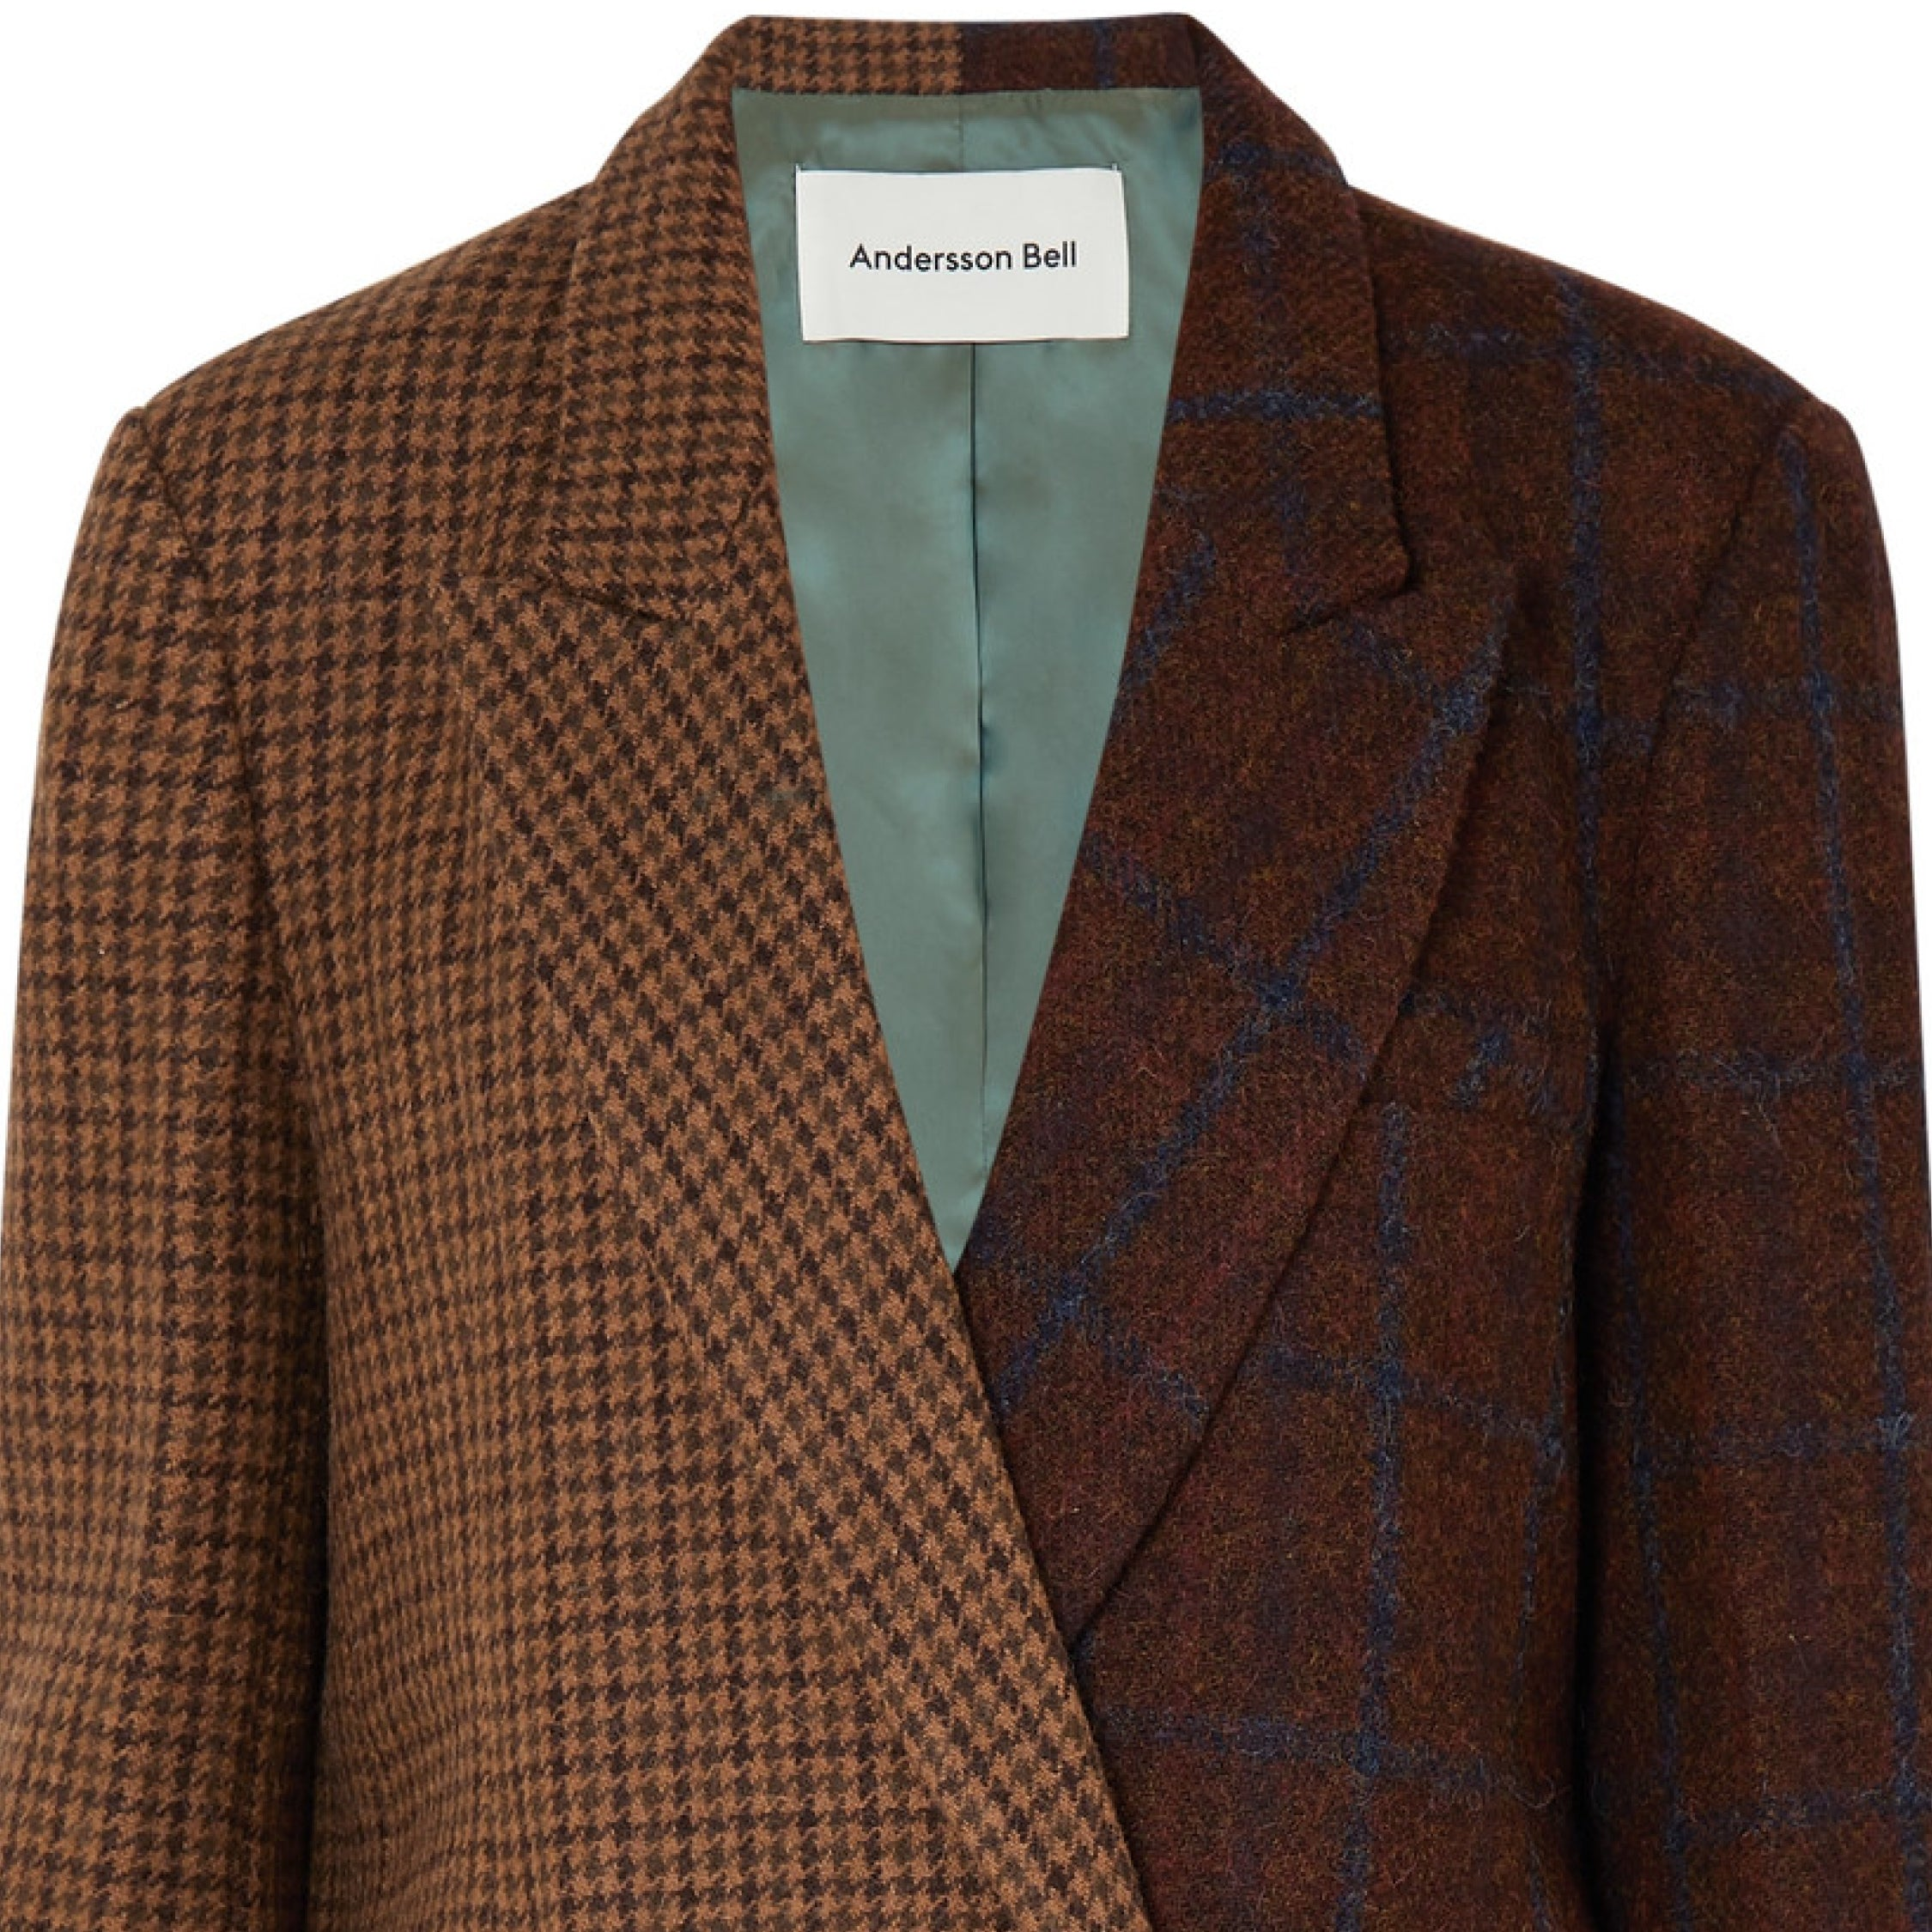 Andersson Bell - Capsule wardrobe jackets - Olga Asymmetric Paneled Checked Wool And Alpaca-blend Blazer